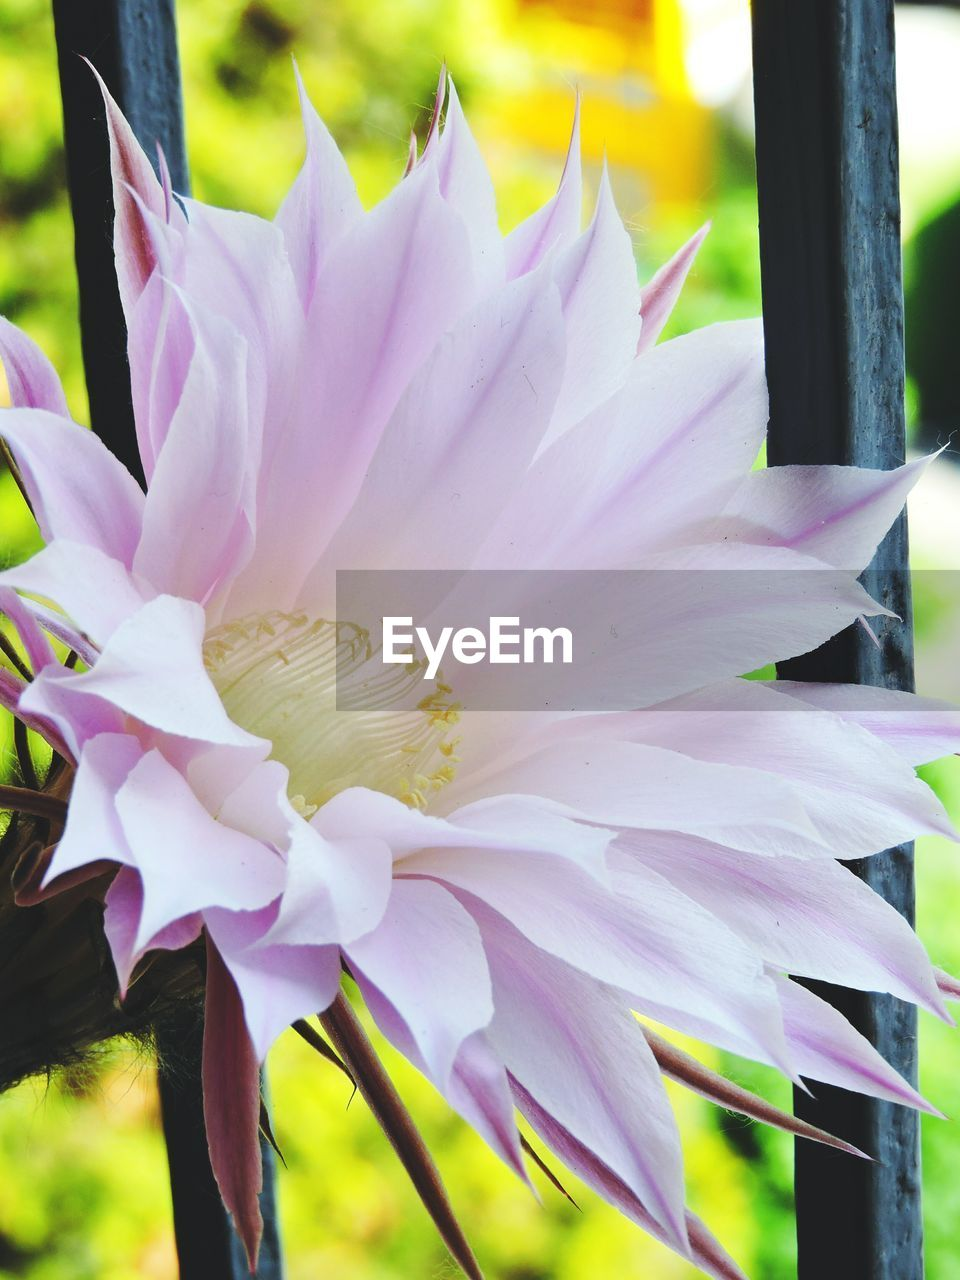 flower, petal, fragility, beauty in nature, flower head, nature, growth, close-up, no people, day, freshness, outdoors, plant, blooming